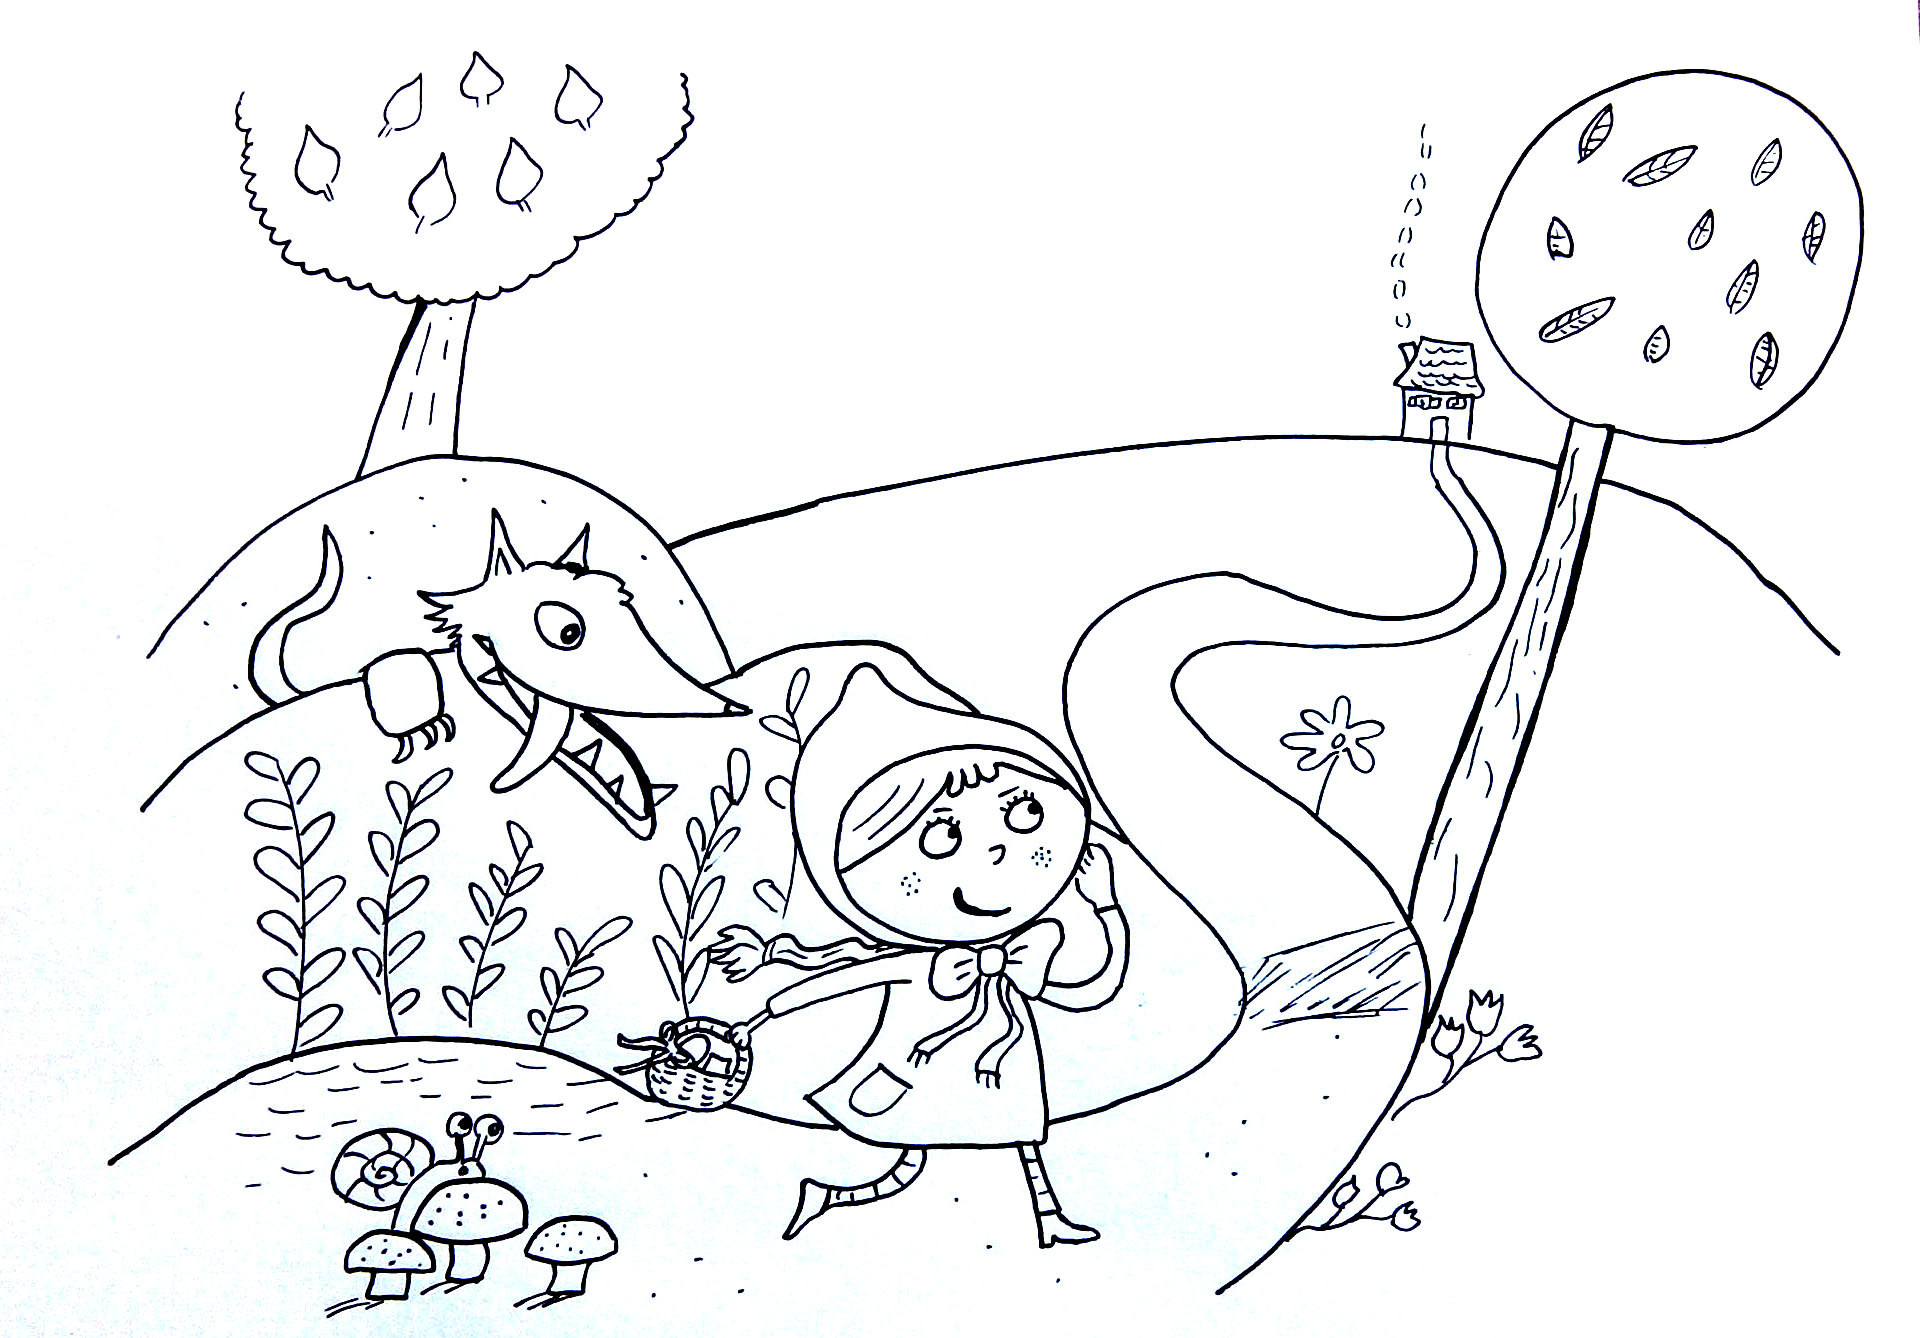 Uncategorized Little Red Riding Hood Coloring Page little red riding hood ambushed by wolf fairy tales coloring the abushed a from gallery kids fairy